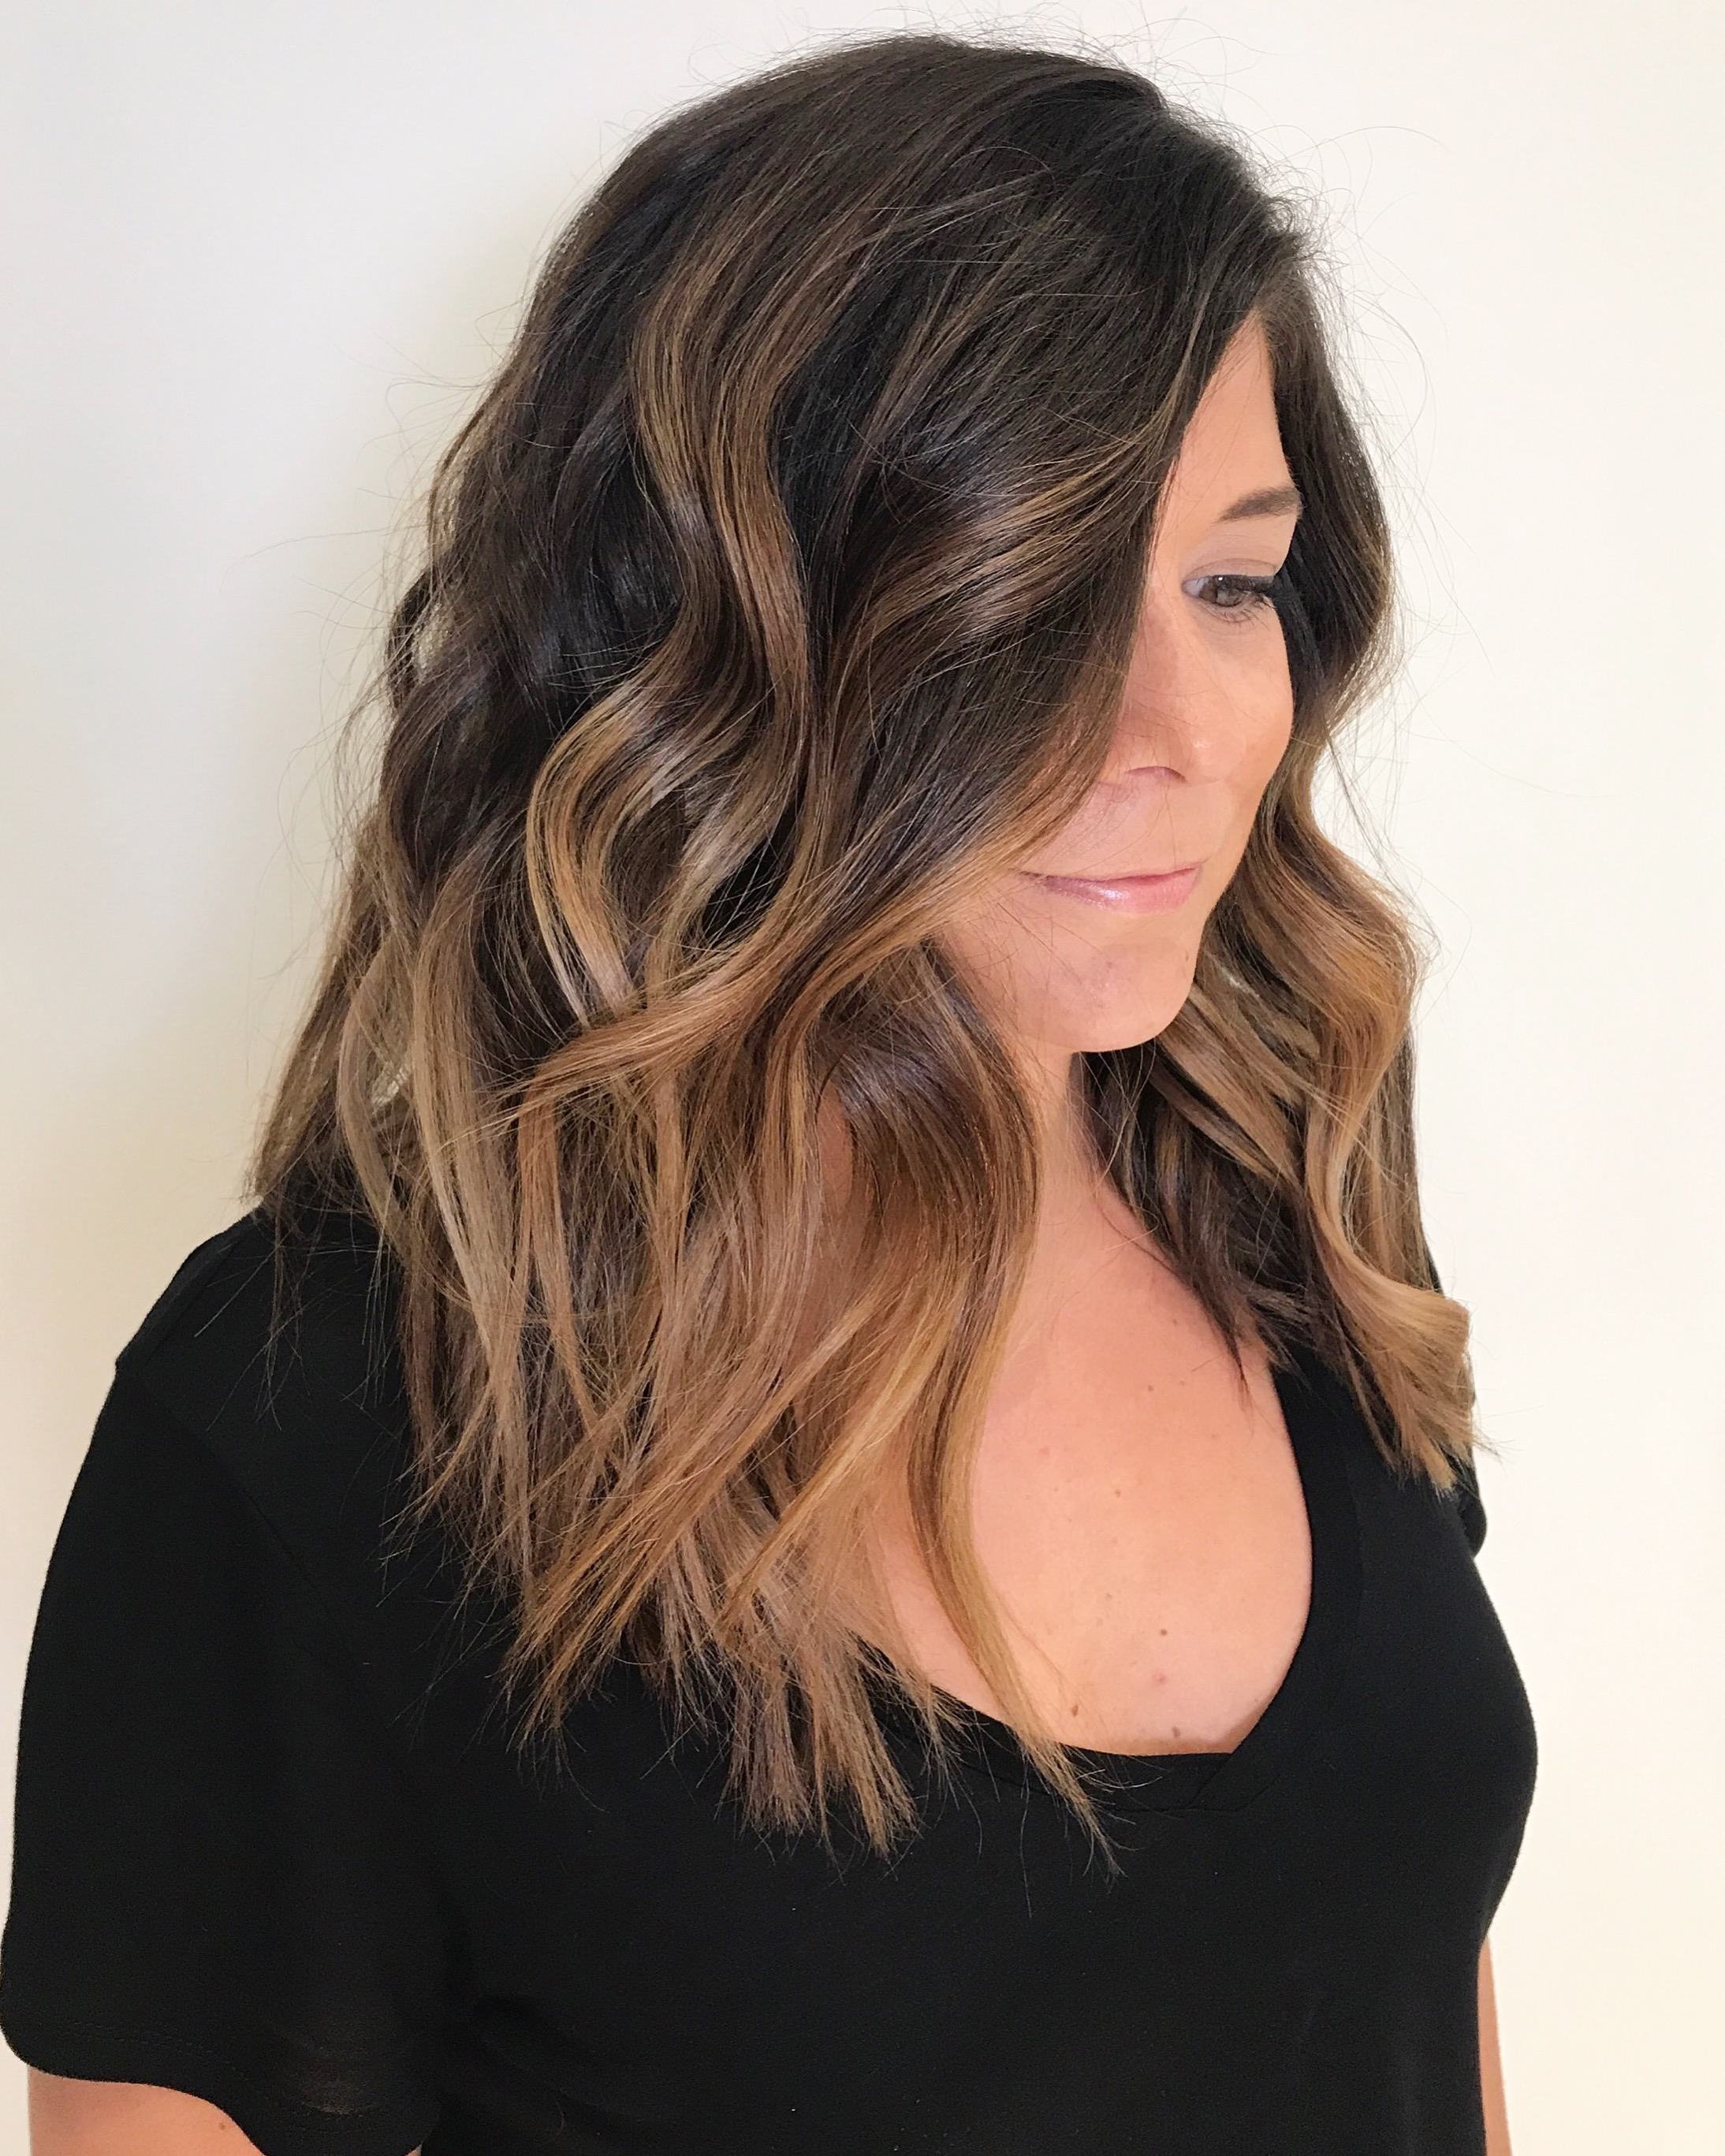 Salon styling - To schedule a salon appointment, please follow link below to book directly with Carissa at Salon Lofts.